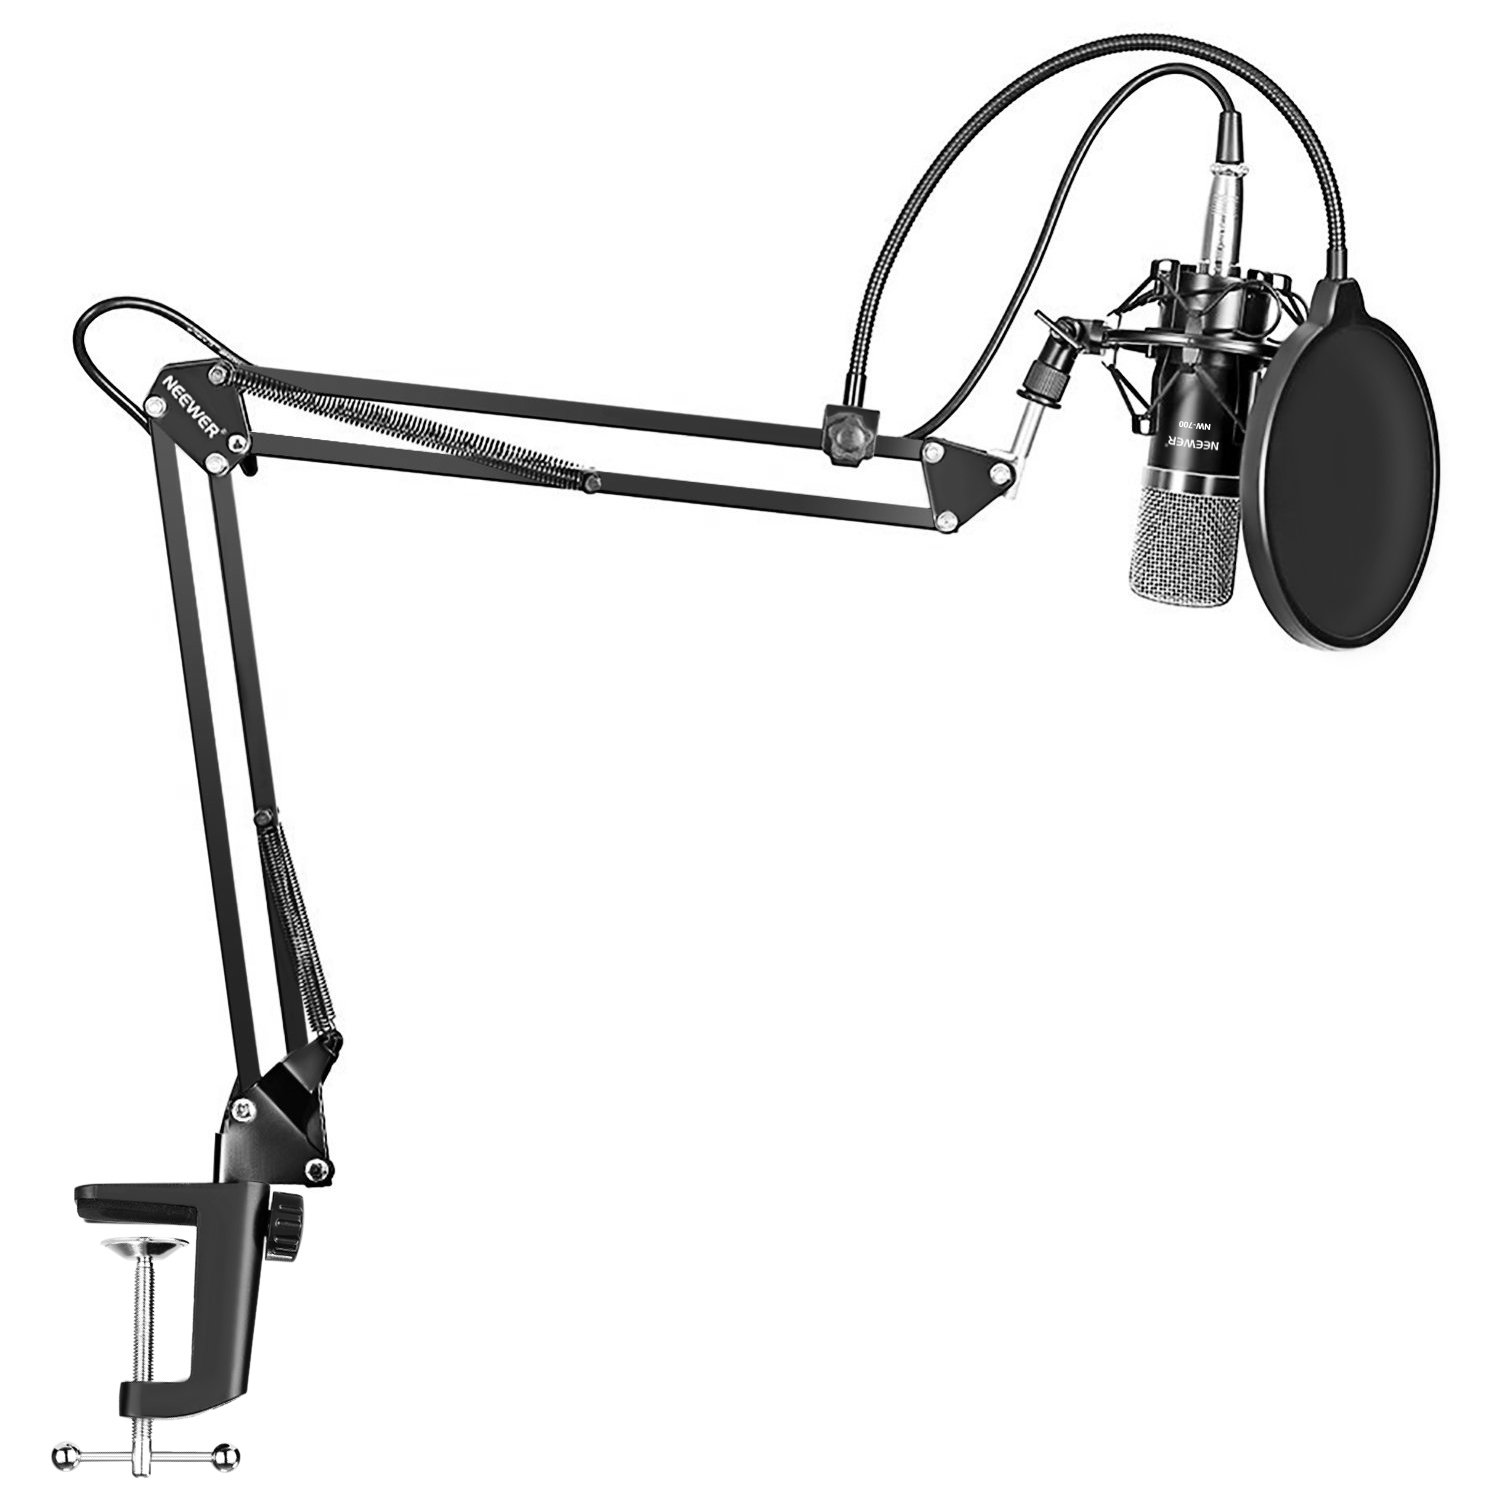 Neewer NW-700 Professional Studio Broadcasting Recording Condenser Microphone & NW-35 Adjustable Recording Microphone Suspension Scissor Arm Stand with Shock Mount and Mounting Clamp Kit by Neewer